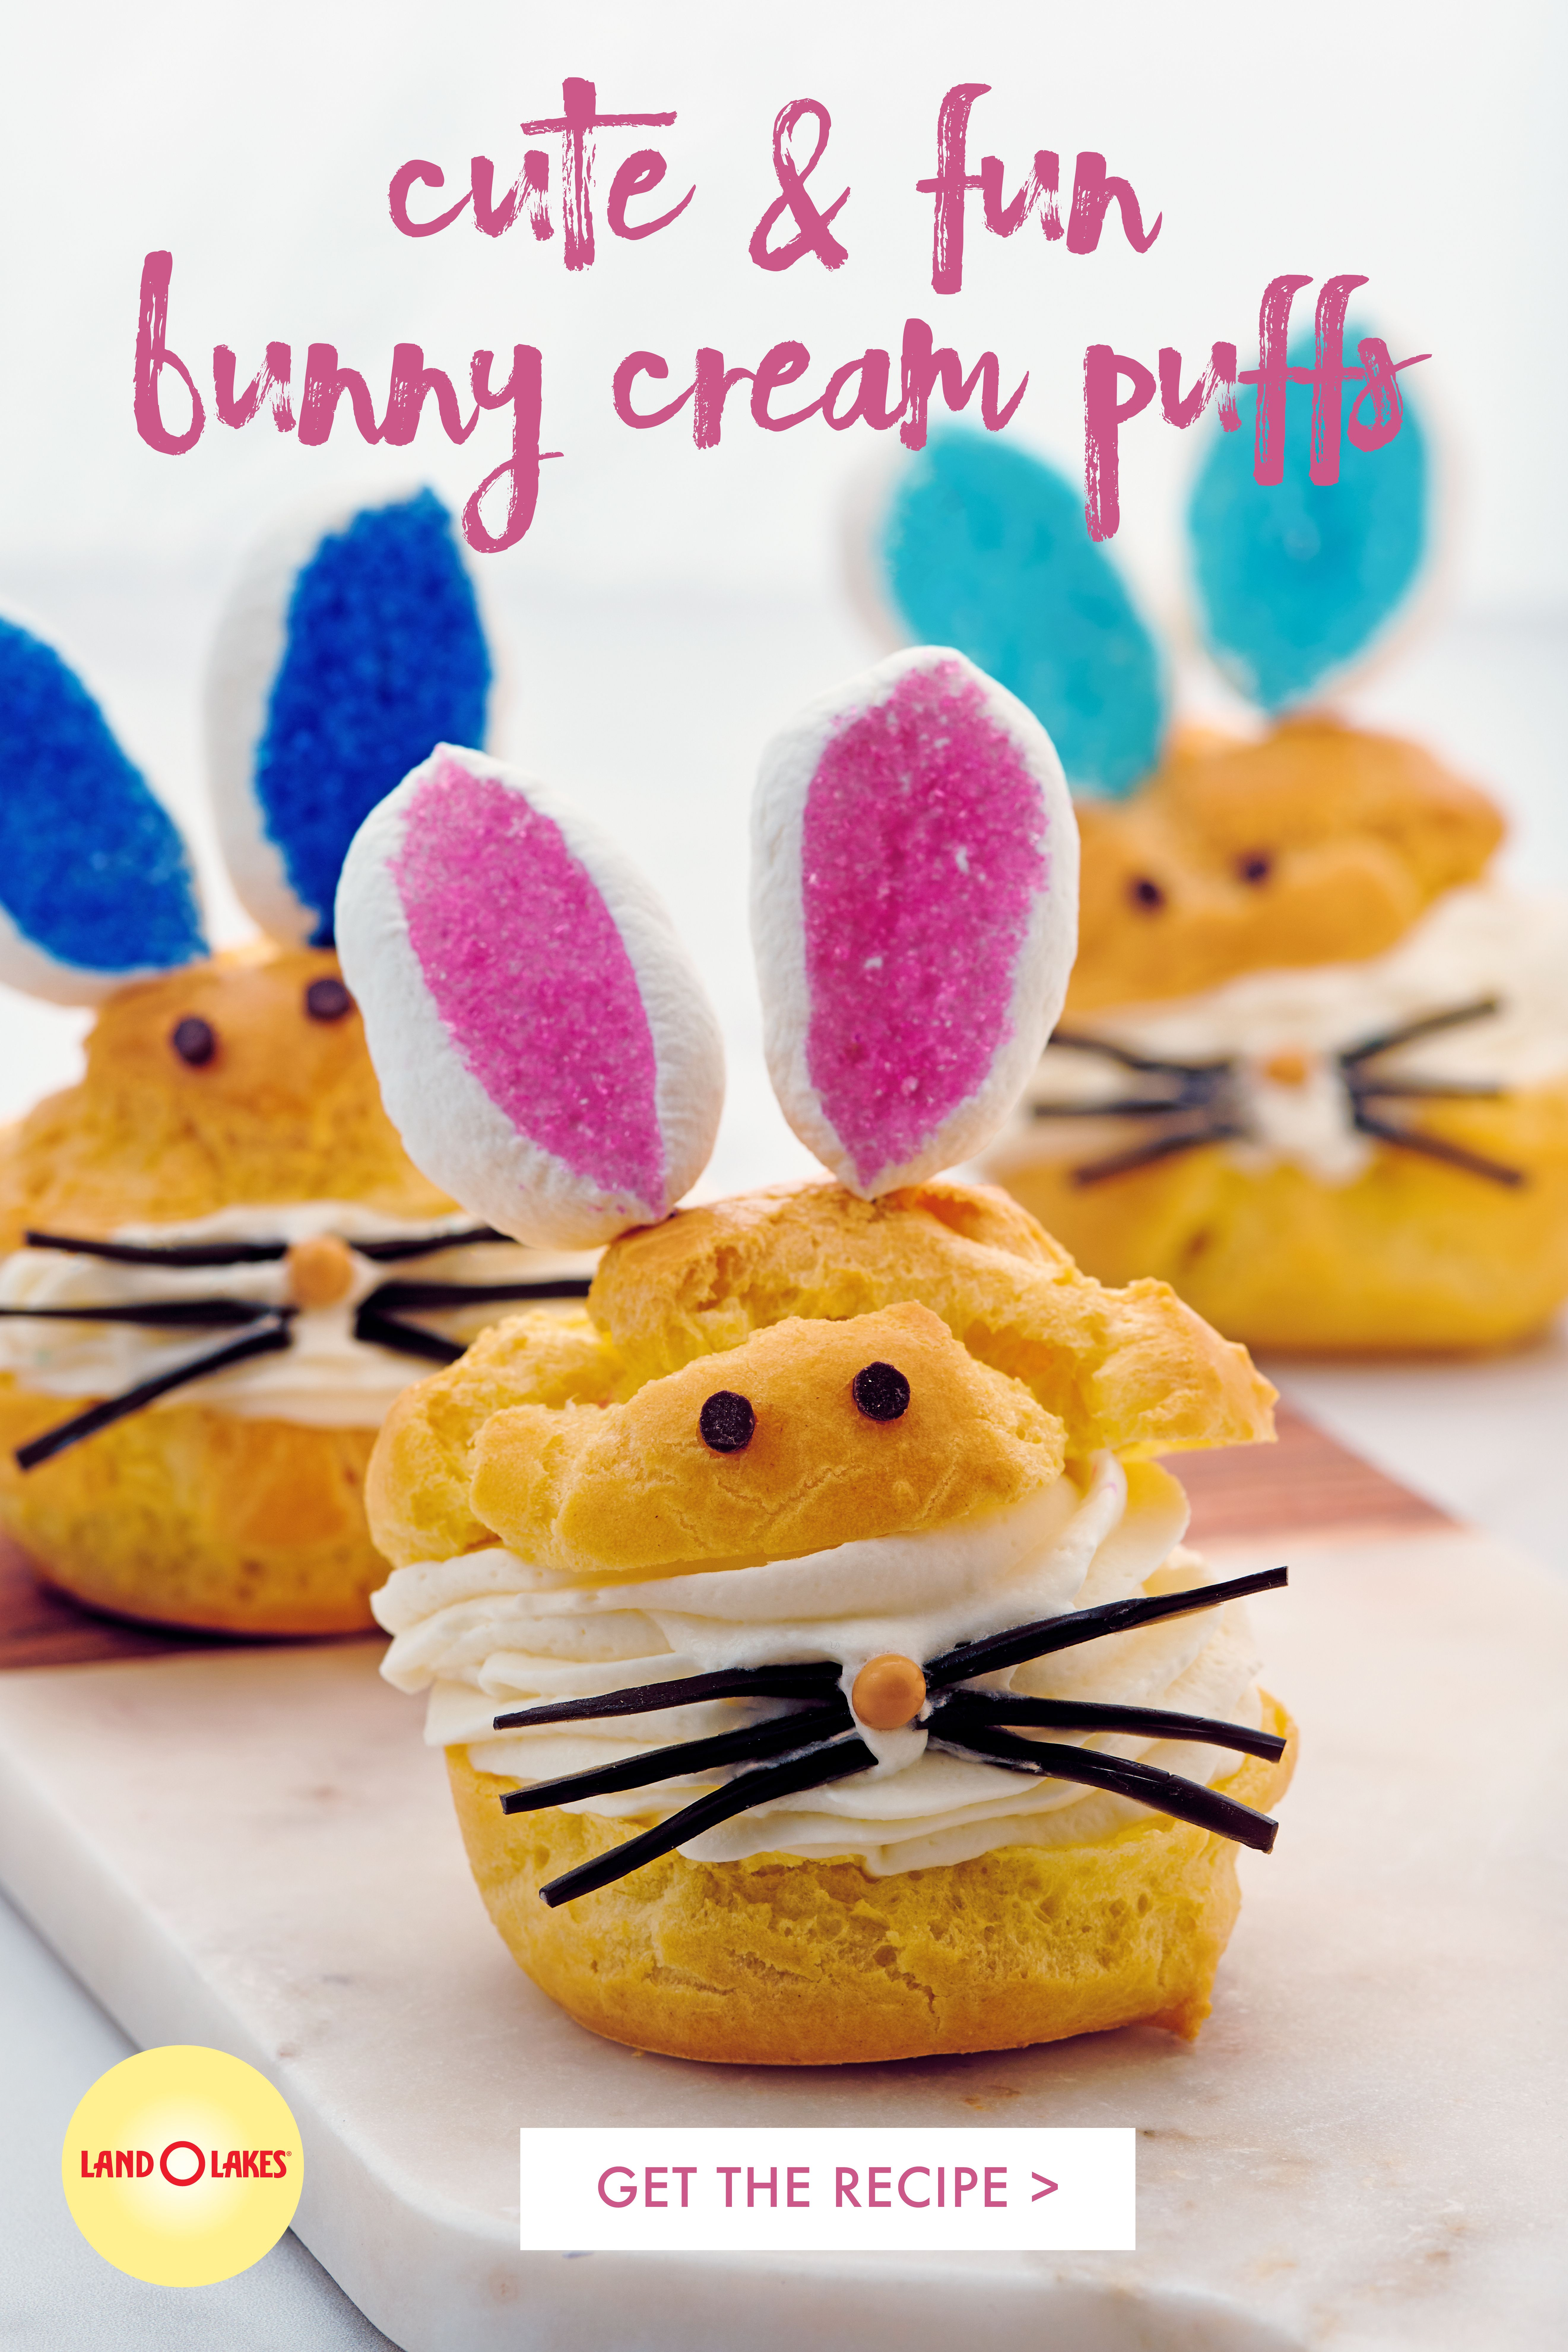 Bunny Cream Puffs Recipe In 2020 Easter Party Food Cream Puffs Holiday Desserts